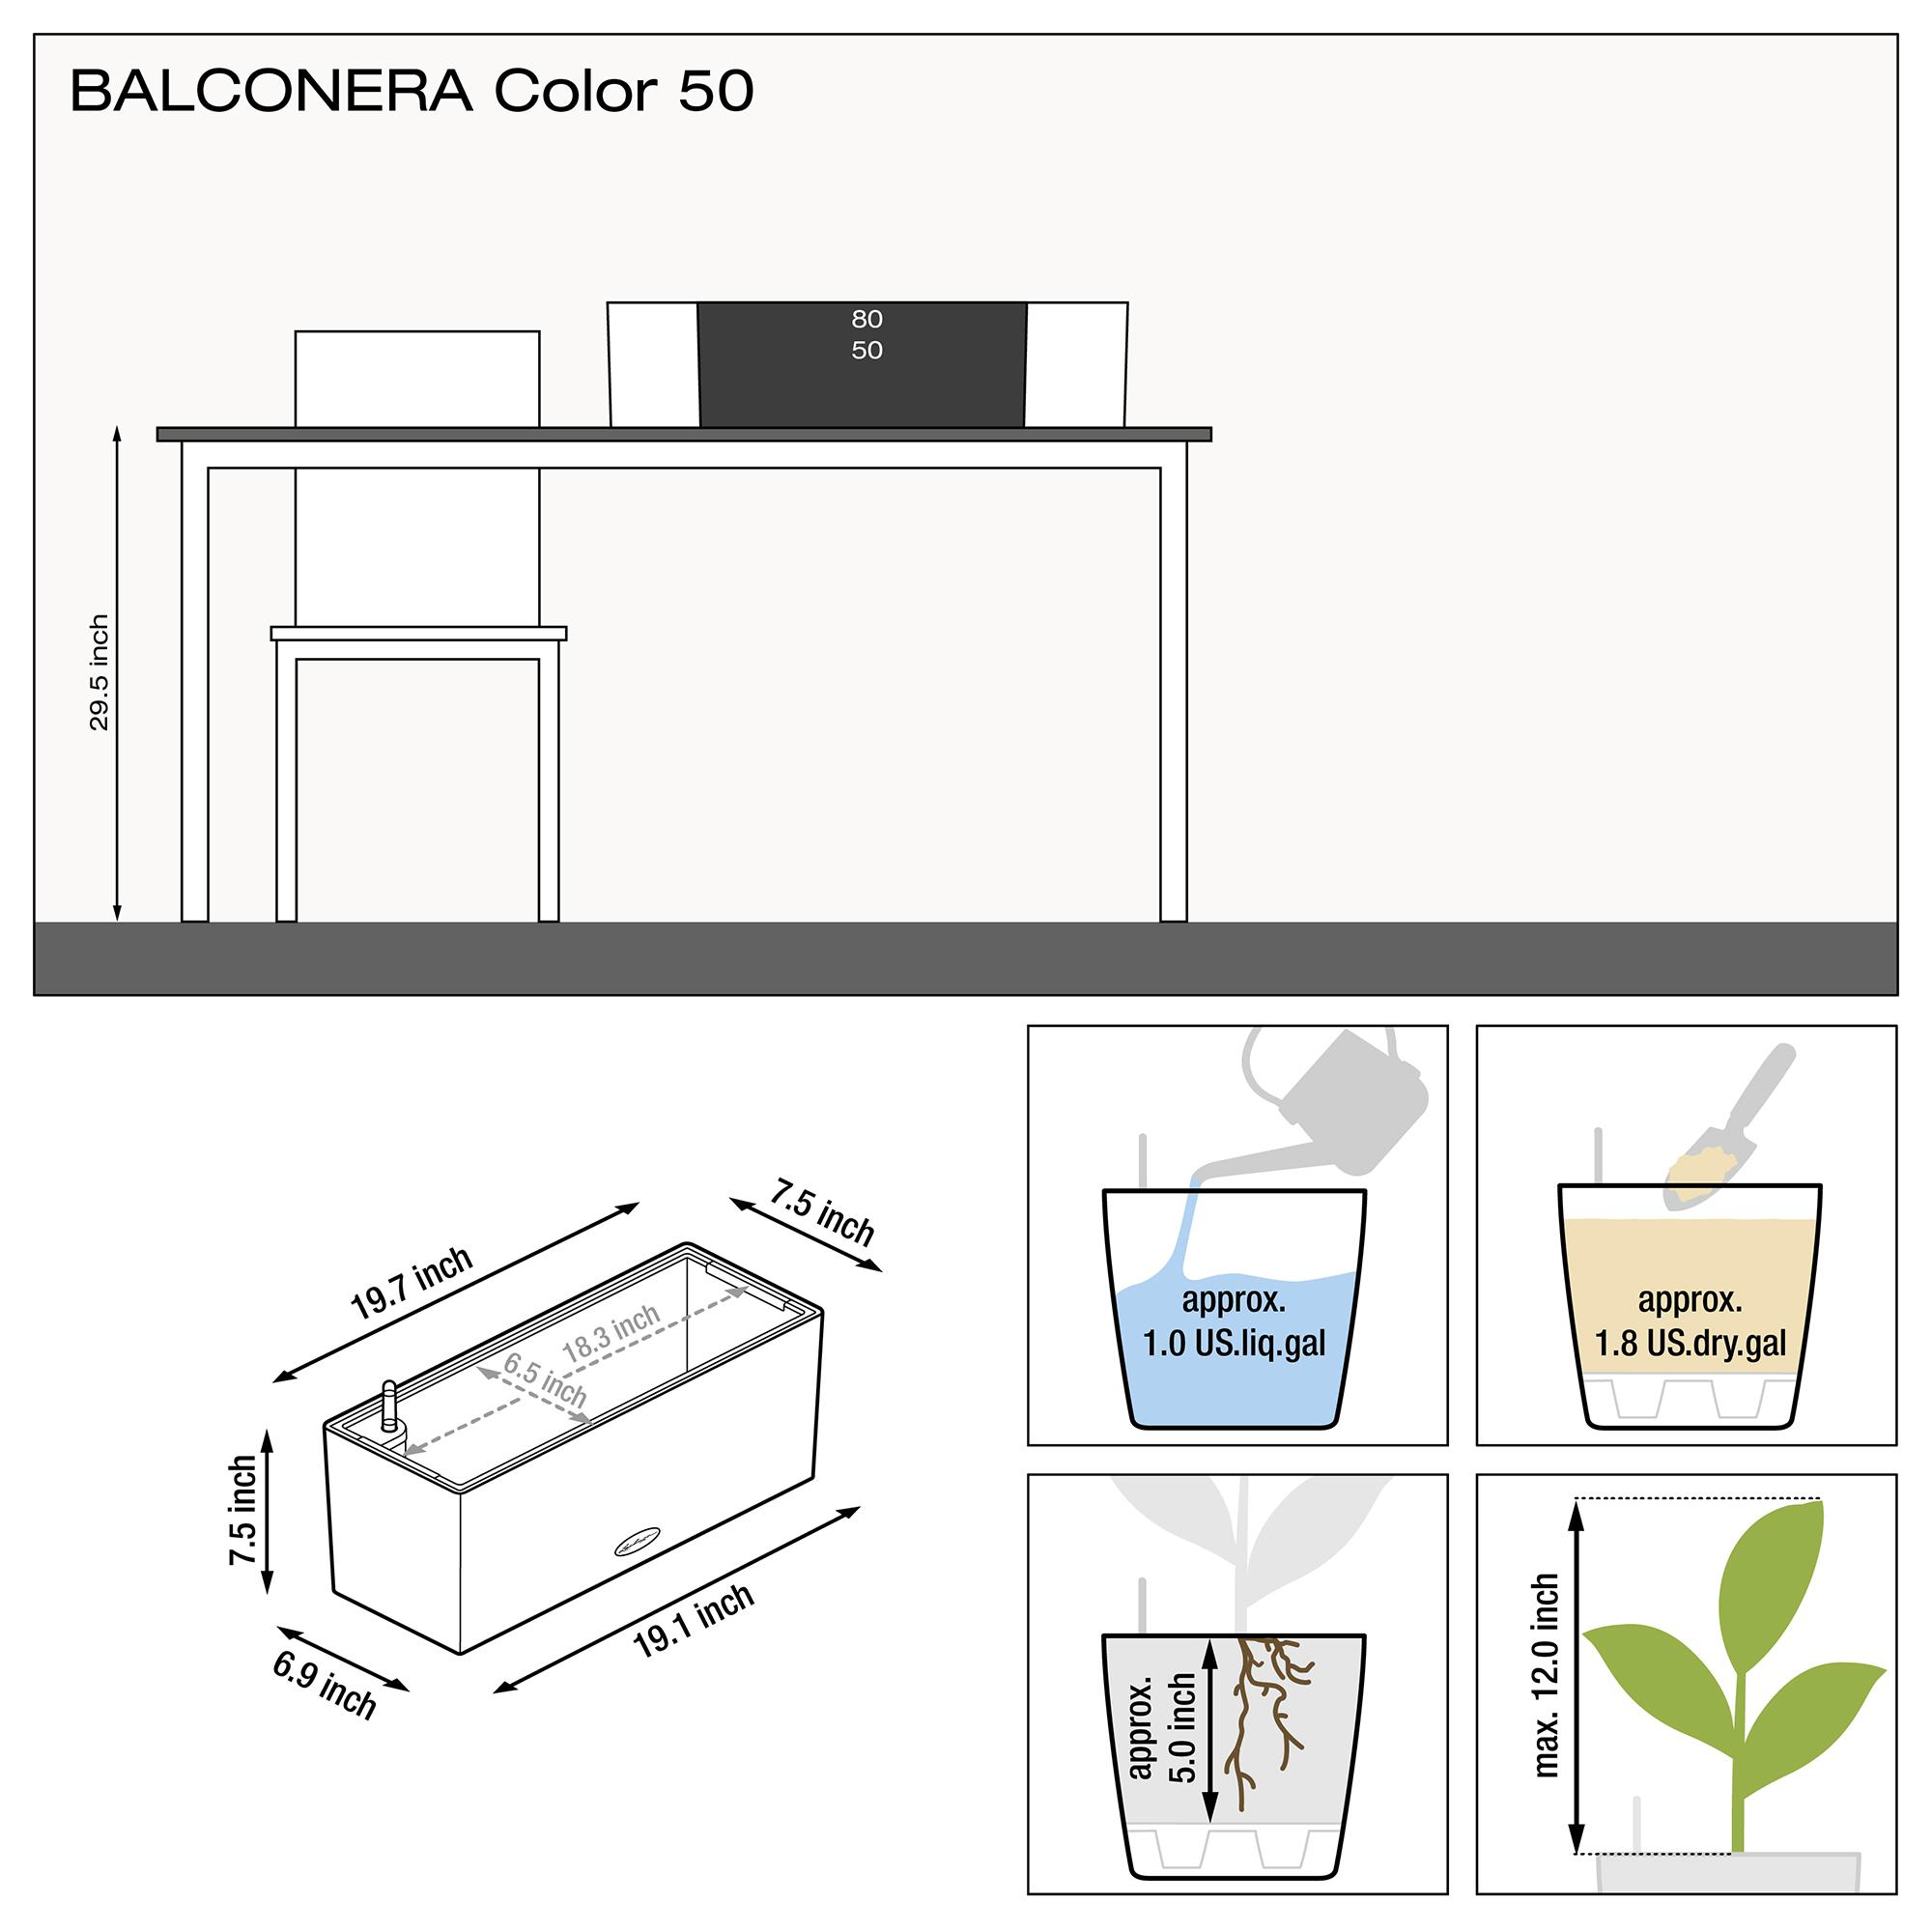 le_balconera-color50_product_addi_nz_us